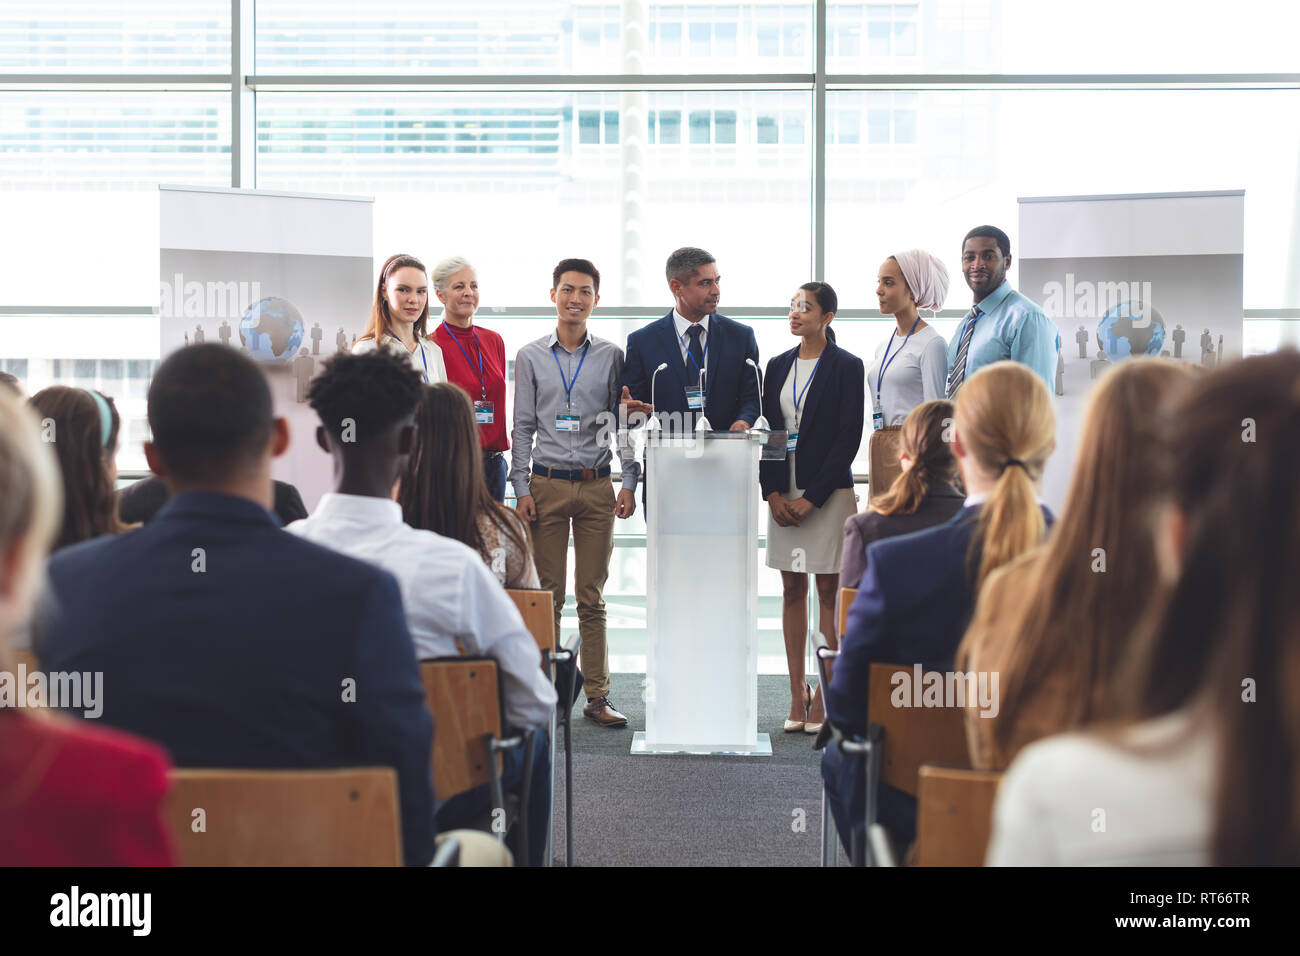 Businessman standing at podium with colleagues and speaks in a business seminar - Stock Image